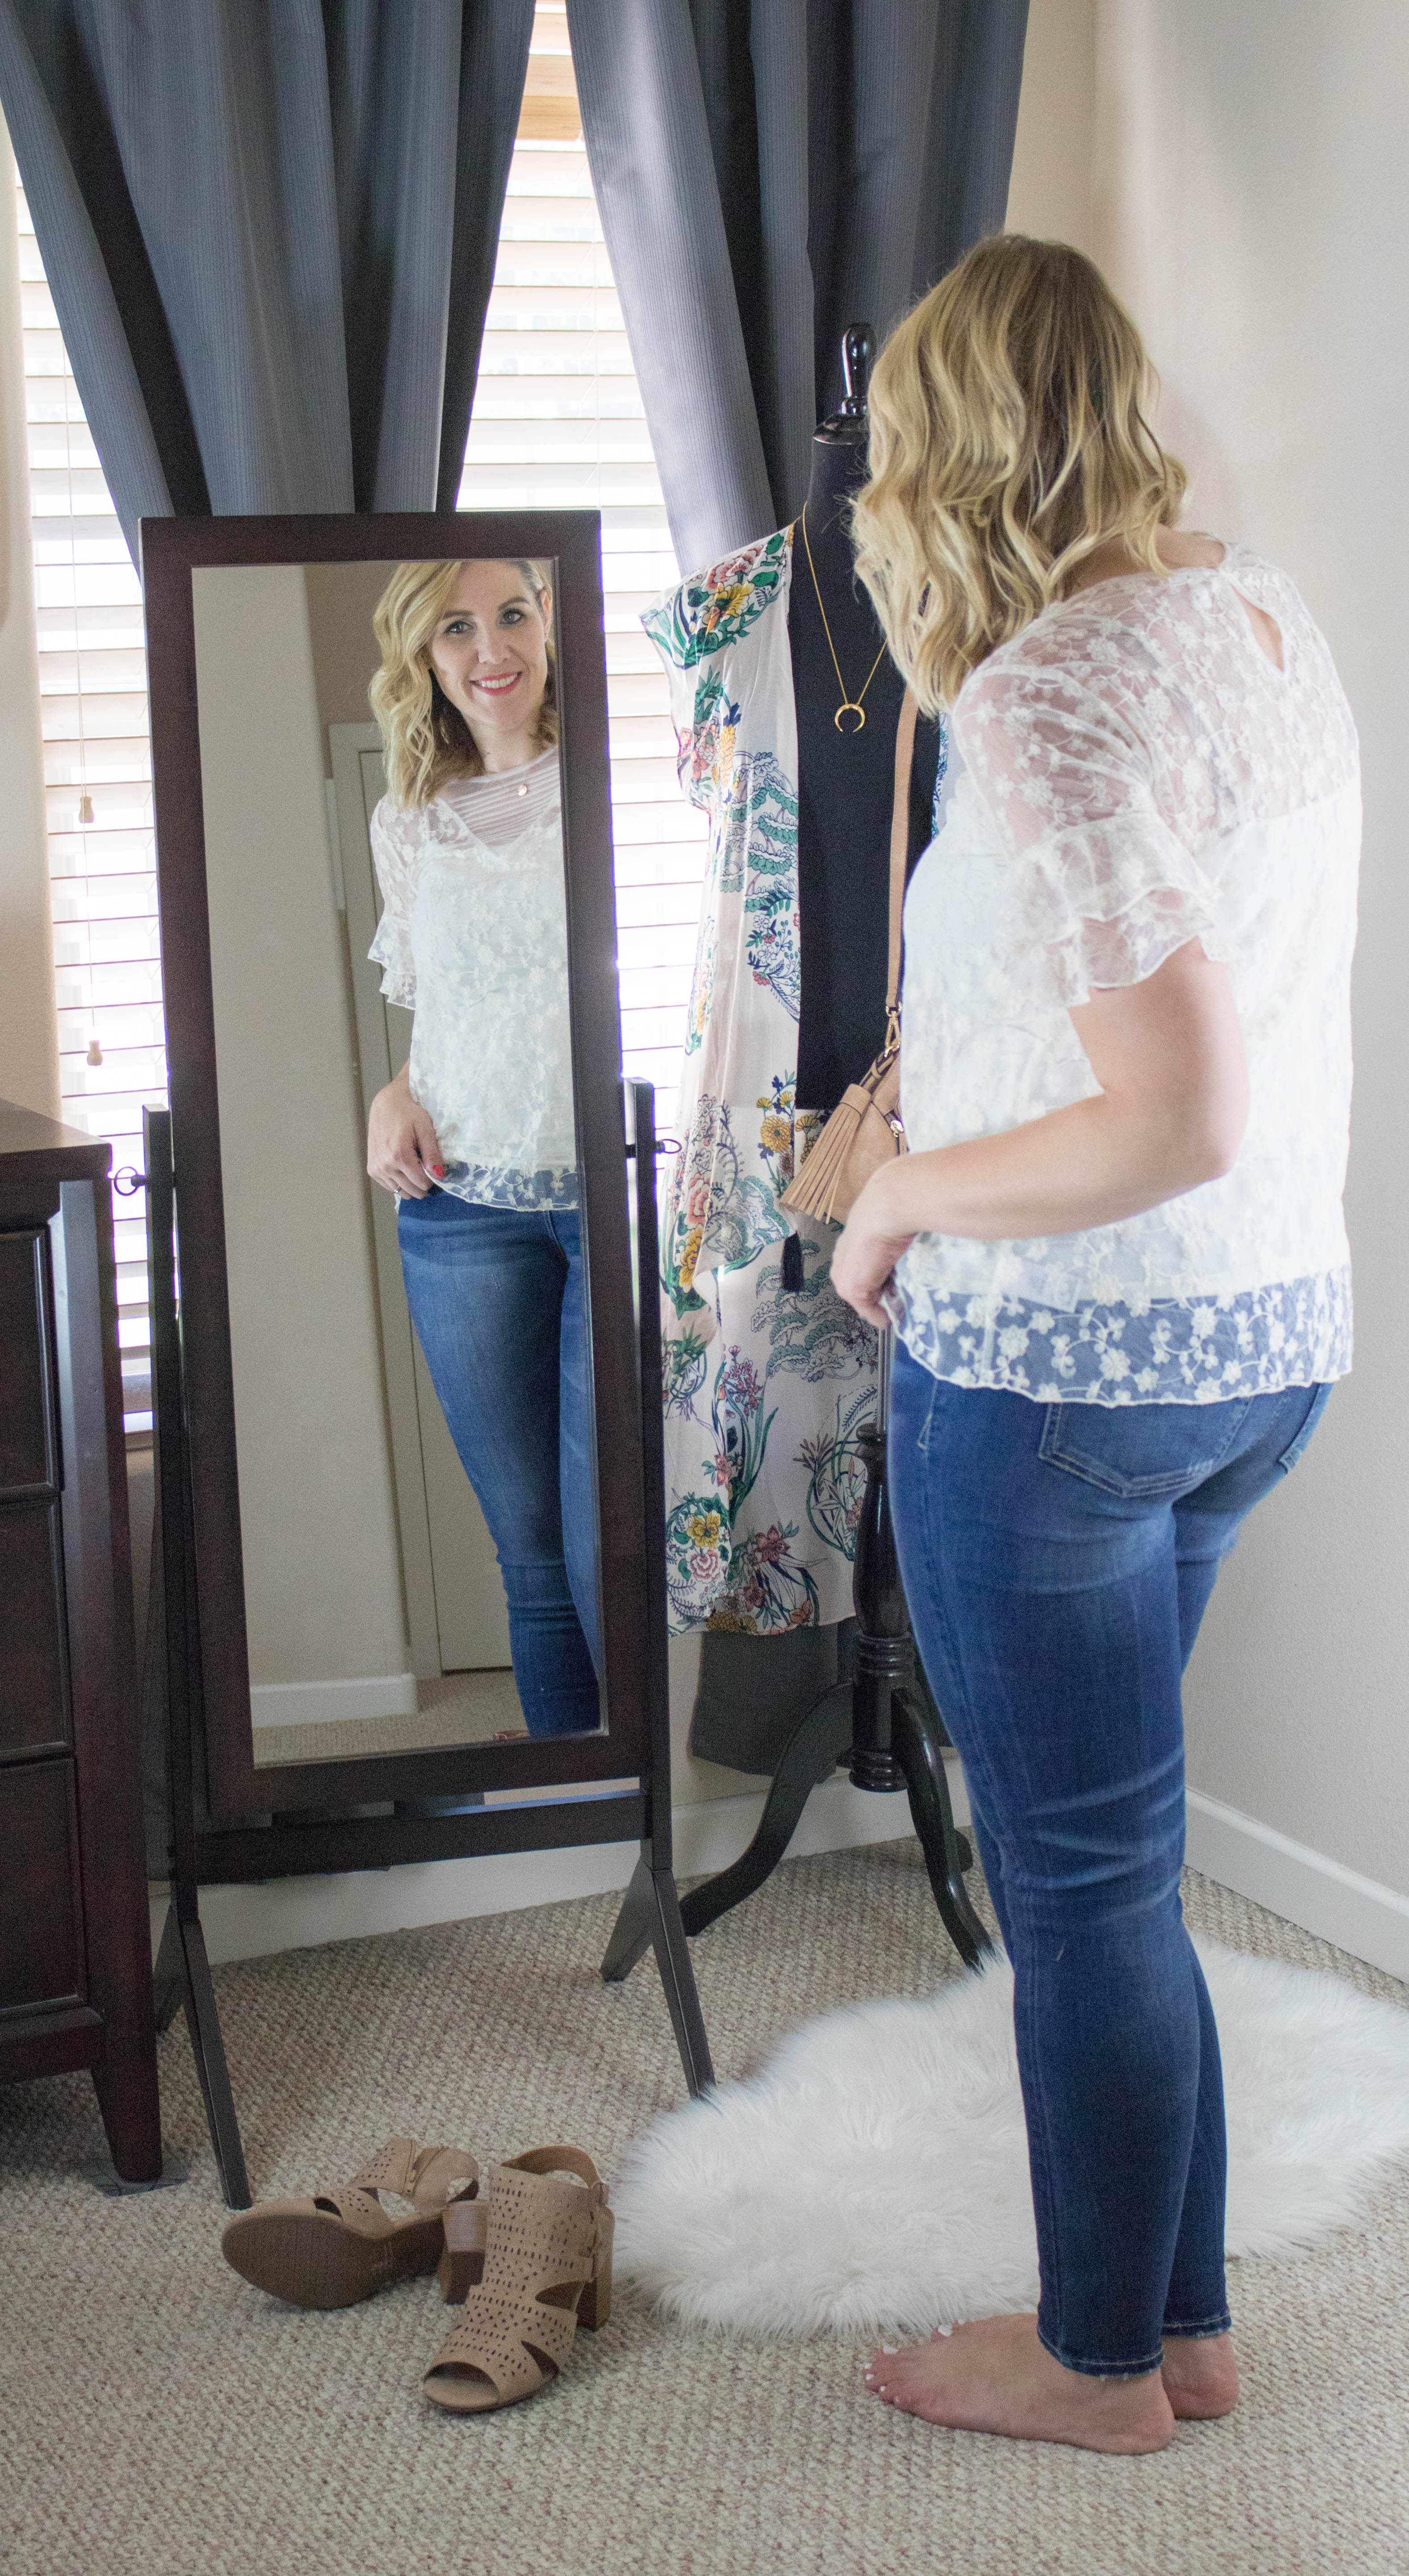 date night style with jeans #datenight #styleblogger #fashion #jeans